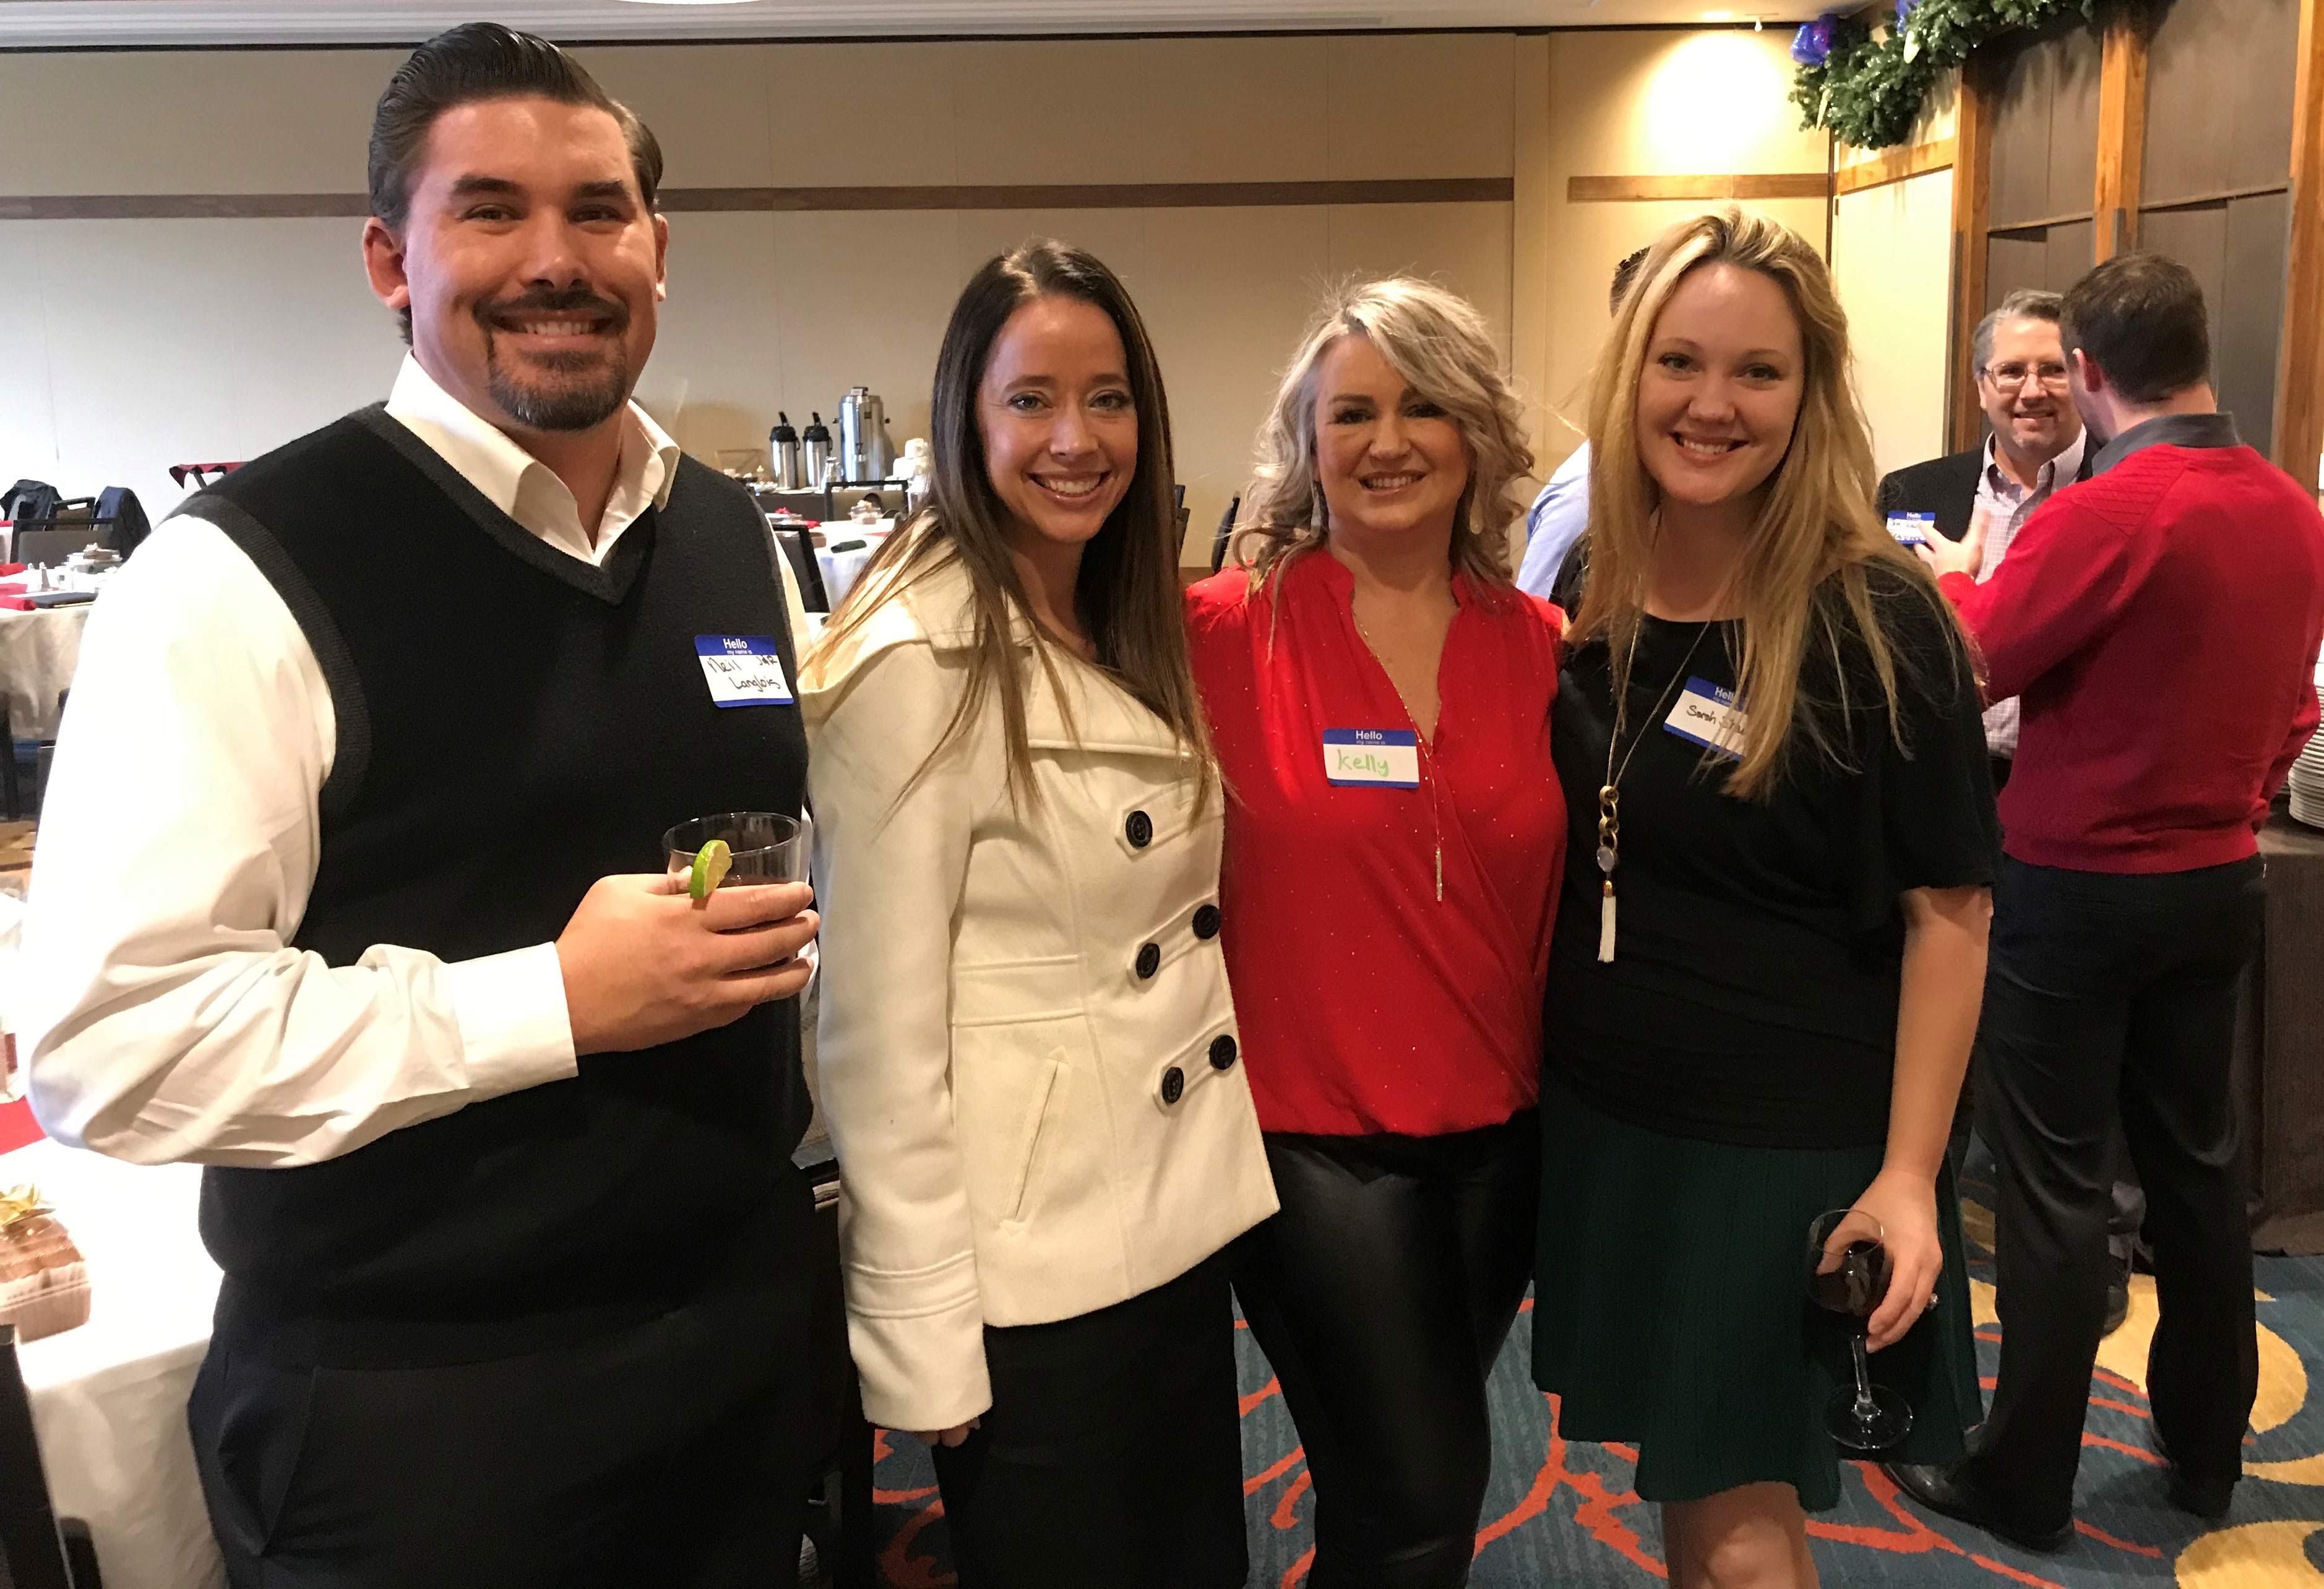 Image of 2018 holiday lunch with the Jones & Roth team